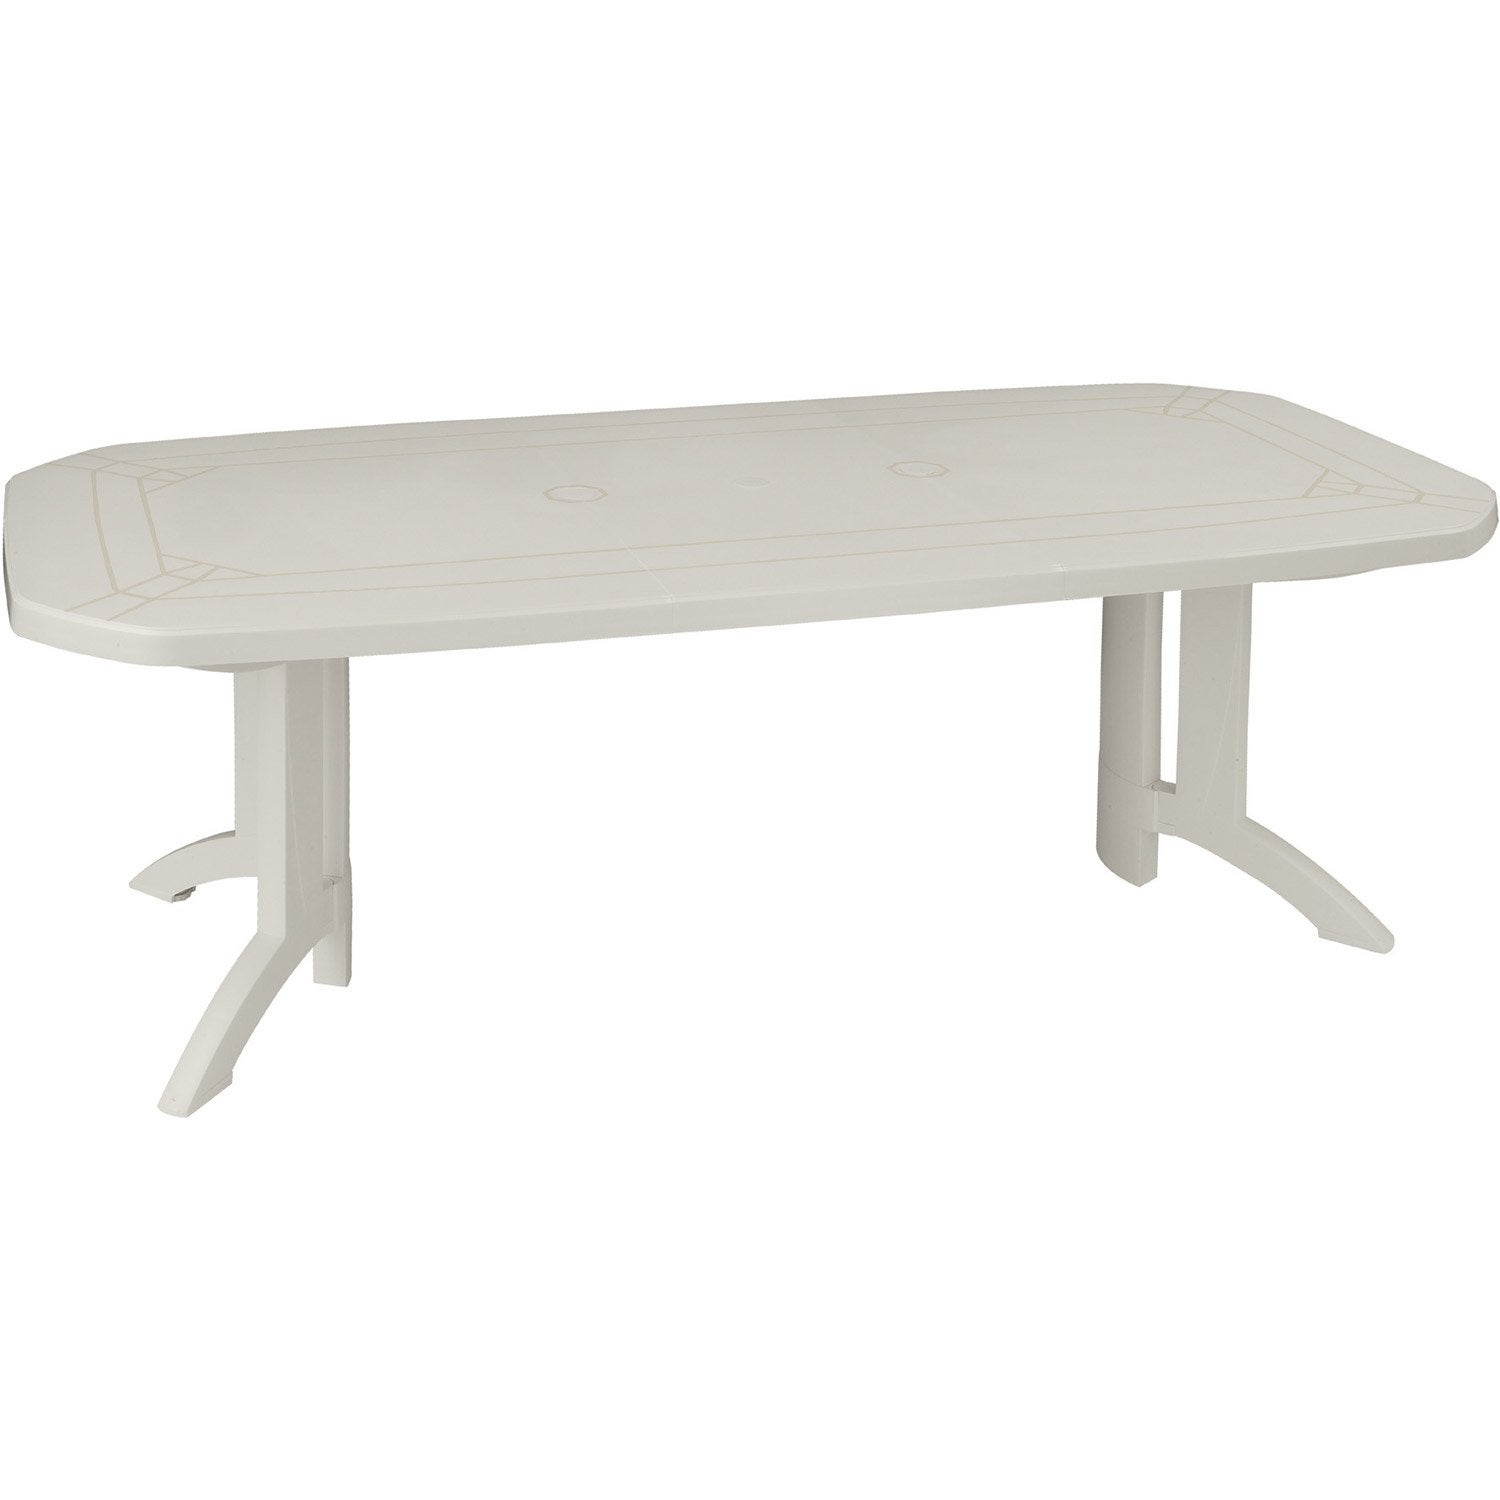 Table de jardin GROSFILLEX Véga rectangulaire blanc 10 ...